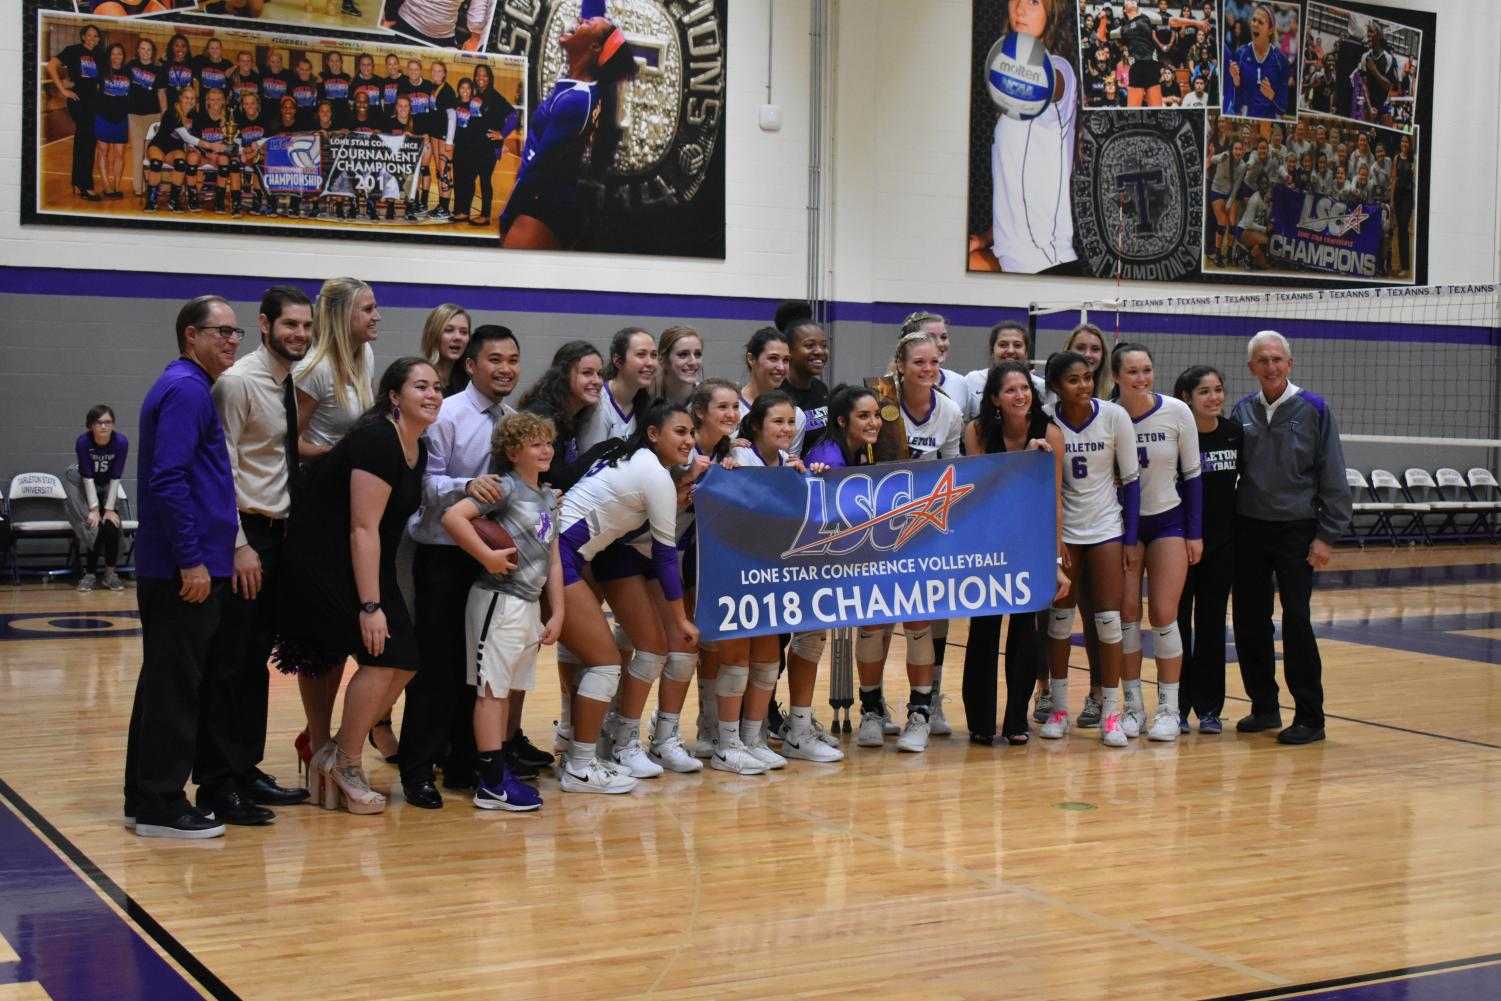 The Tarleton TexAnn's pose with their 2018 LSC banner after the Senior game against Cameron University on Oct. 26 in Wisdom Gym.